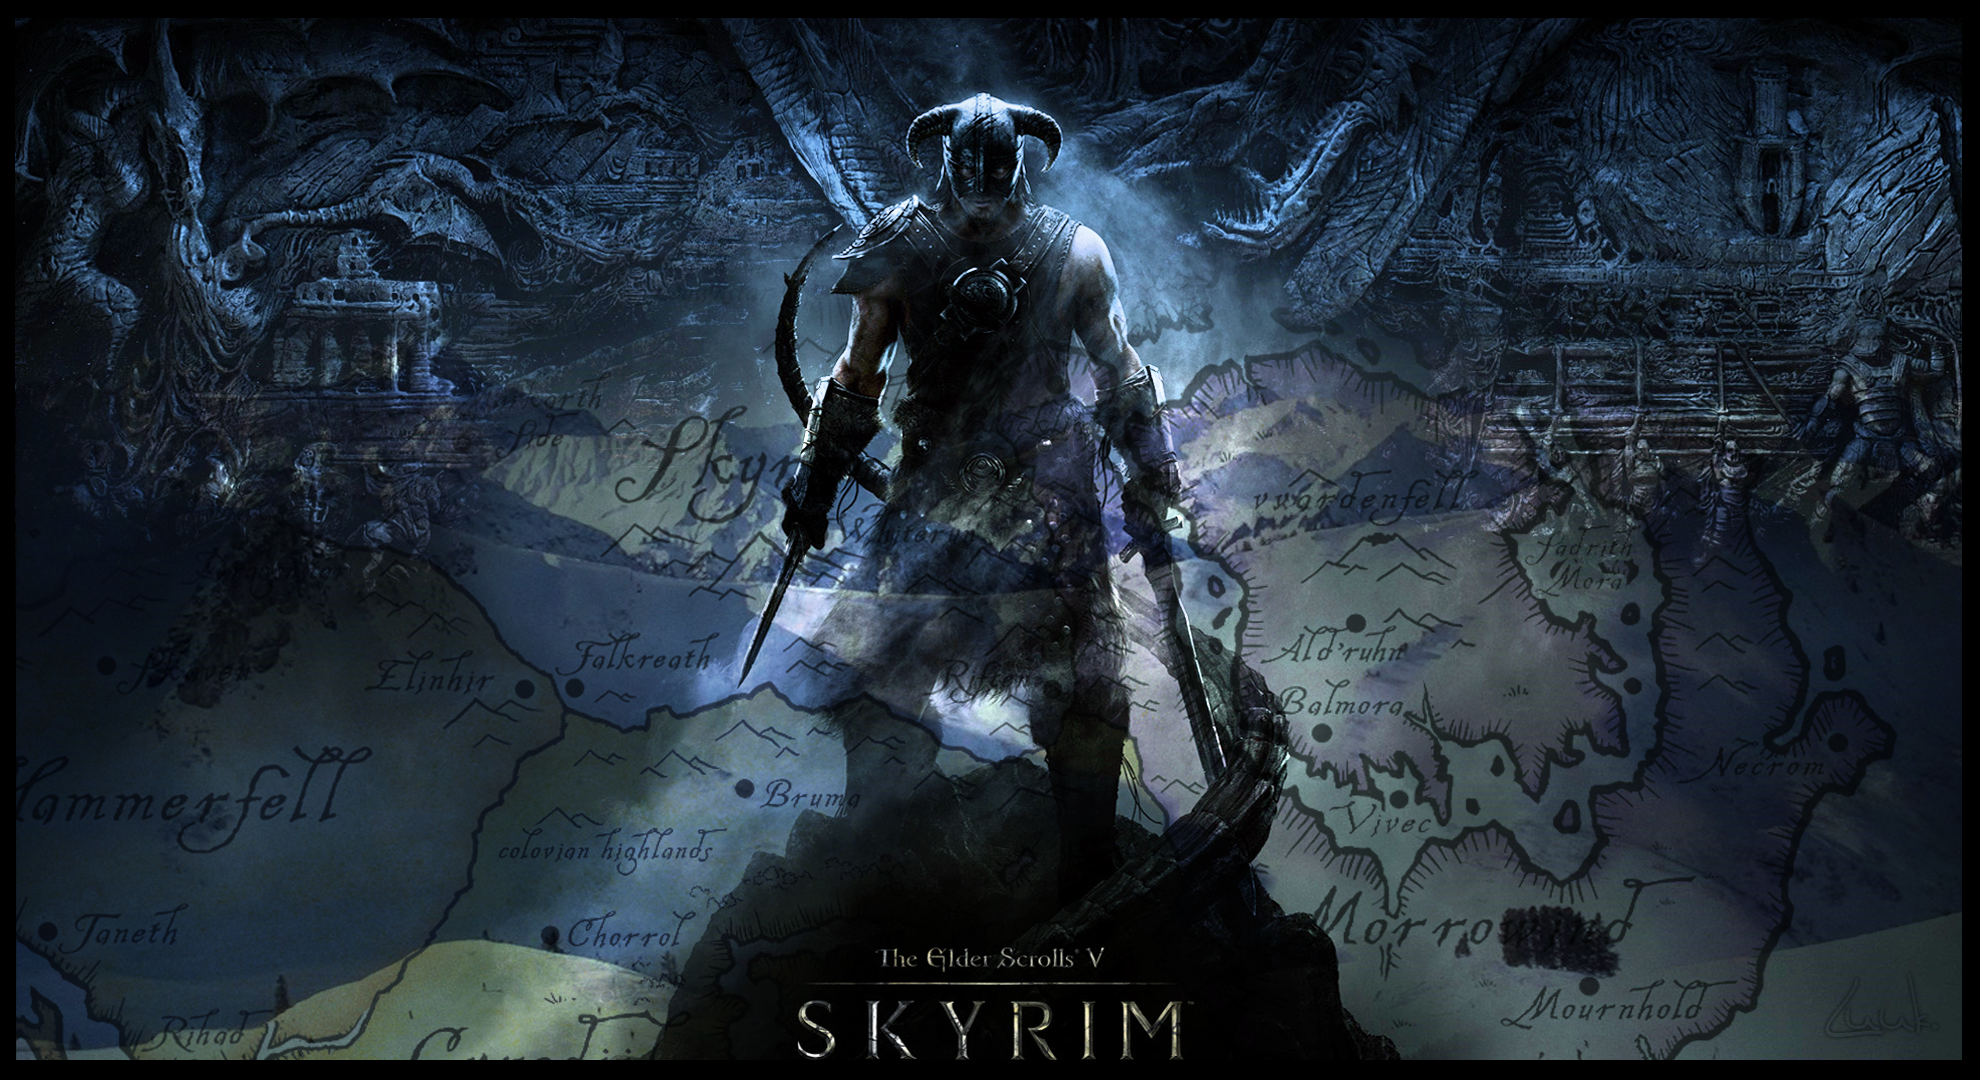 Skyrim   Very Cool Wallpaper image   Le Fancy Wallpapers   Mod DB 1980x1080